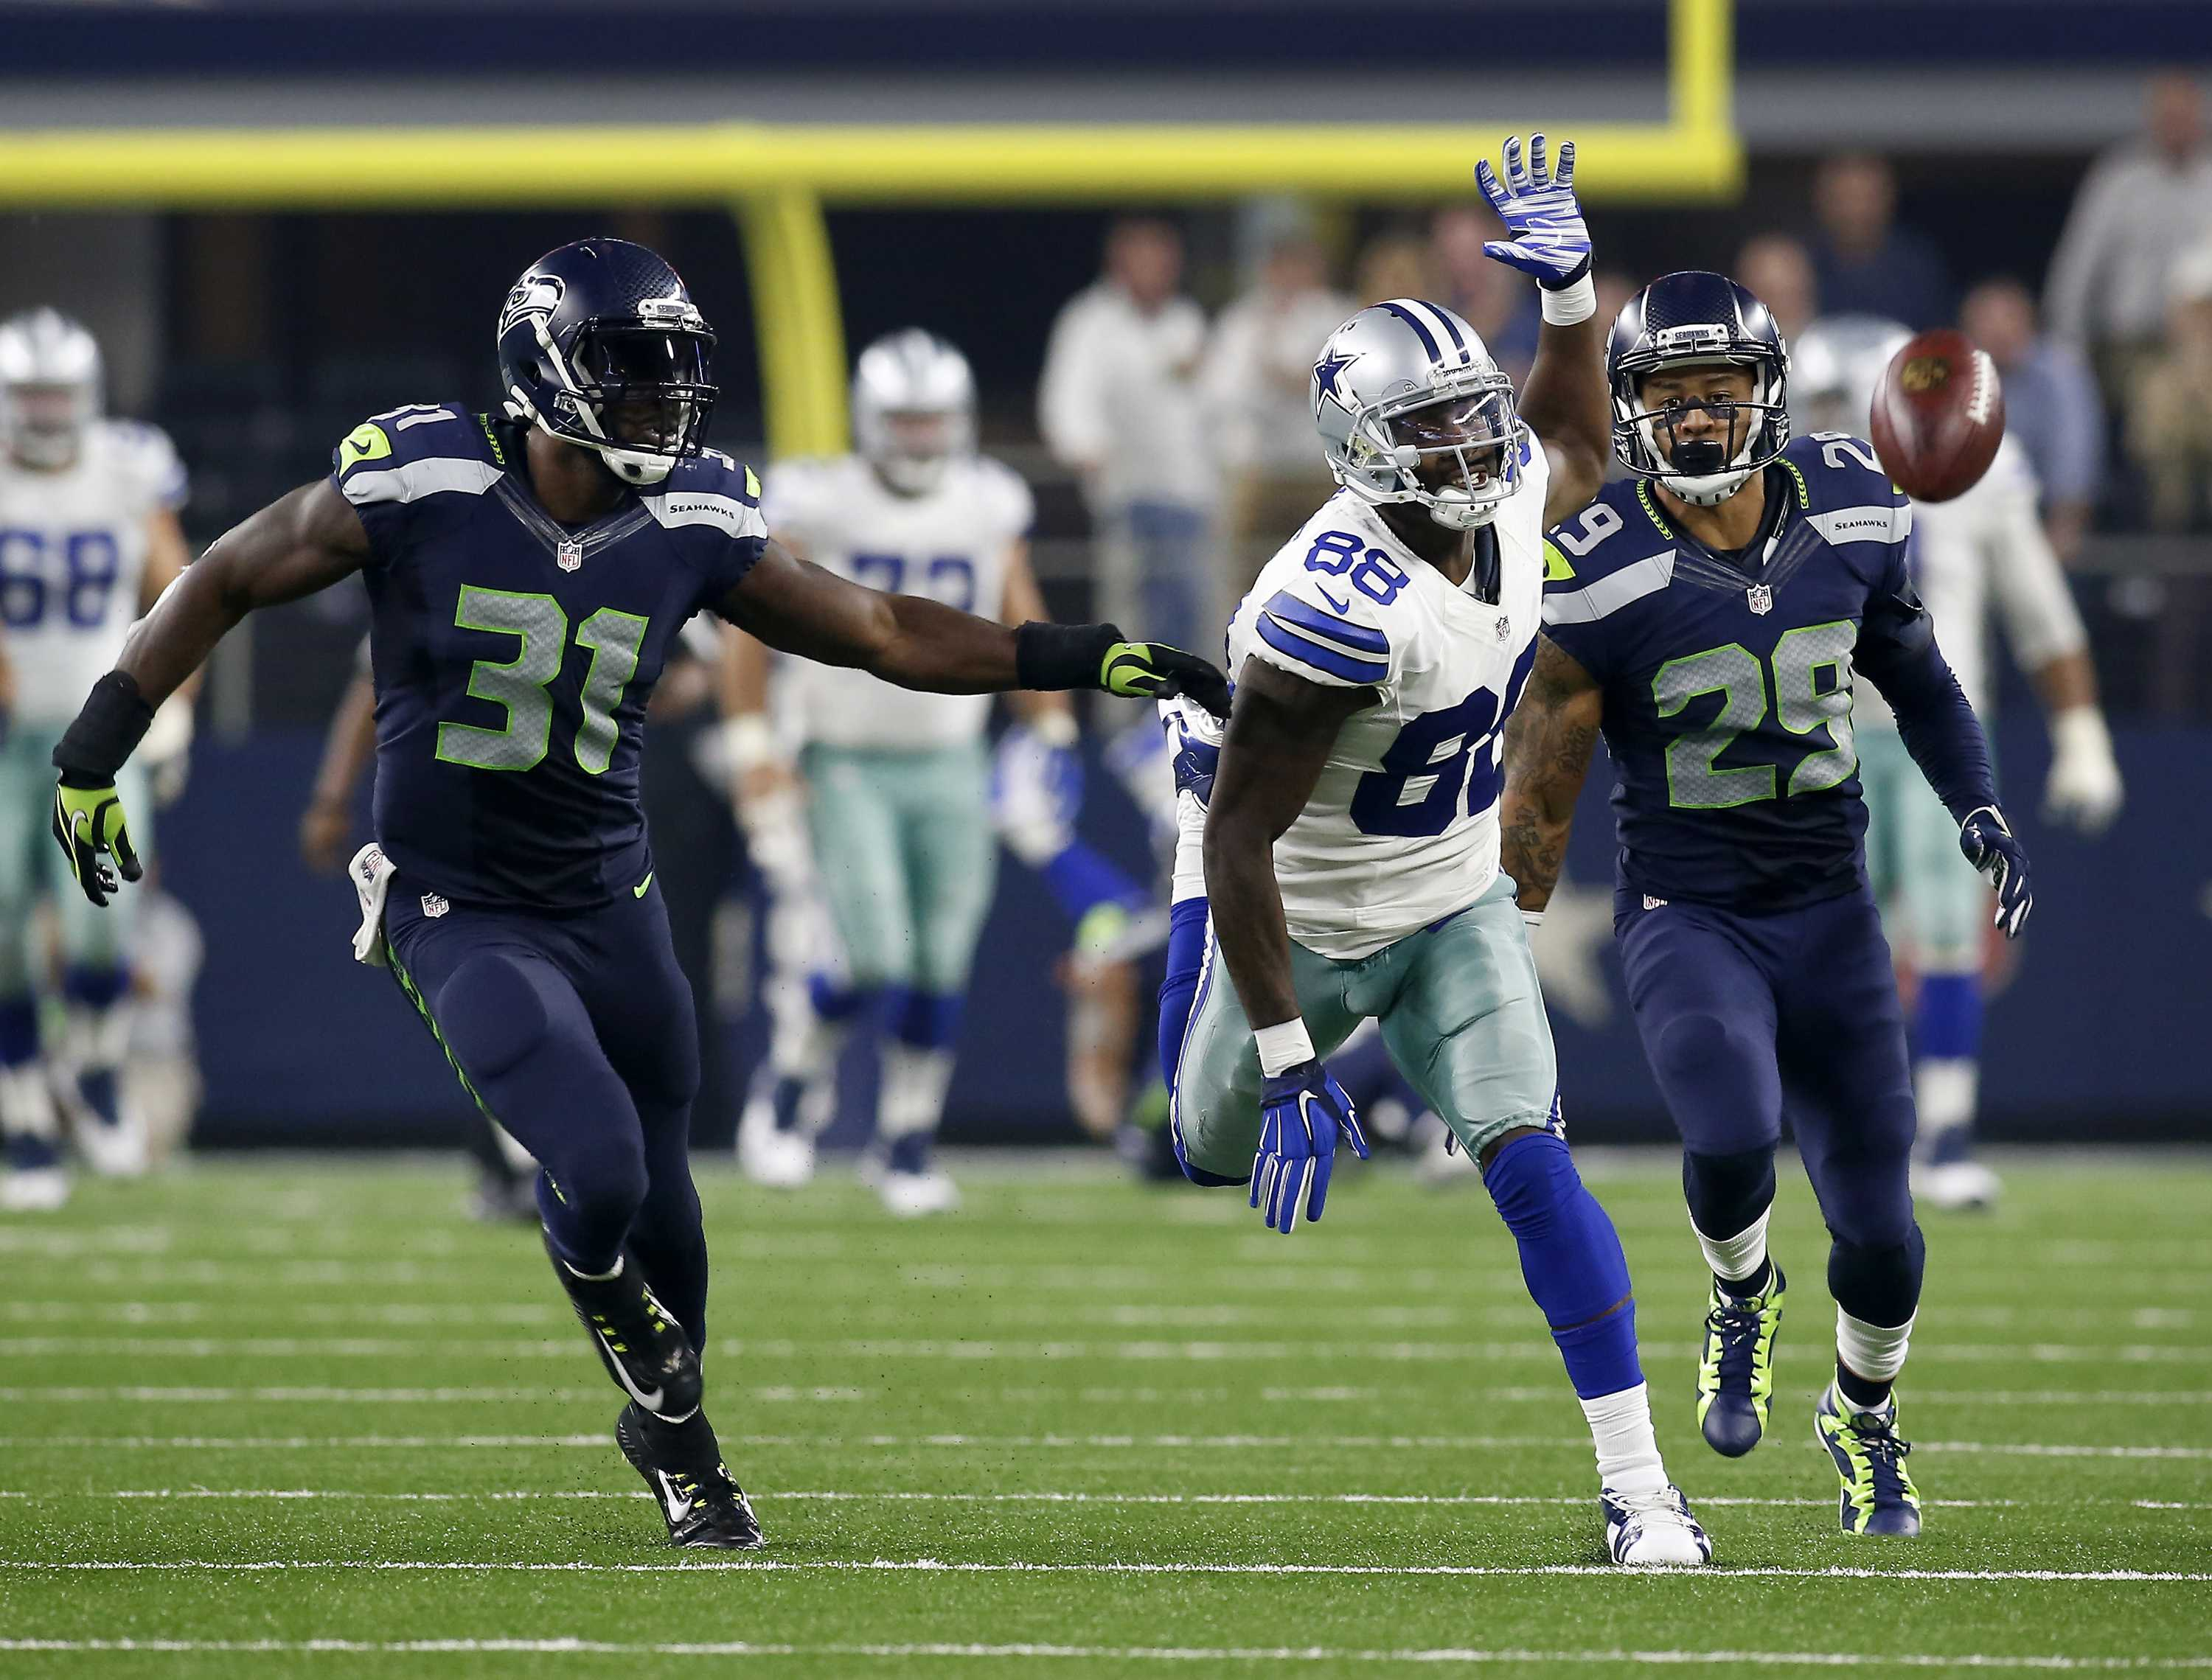 Dallas Cowboys wide receiver Dez Bryant (88) can't reach a deep ball as Seattle Seahawks strong safety Kam Chancellor (31) and Seattle Seahawks' Earl Thomas (29) defend late in the second half on Sunday, Nov. 1, 2015, at AT&T Stadium in Arlington, Texas. (Brad Loper/Fort Worth Star-Telegram/TNS)